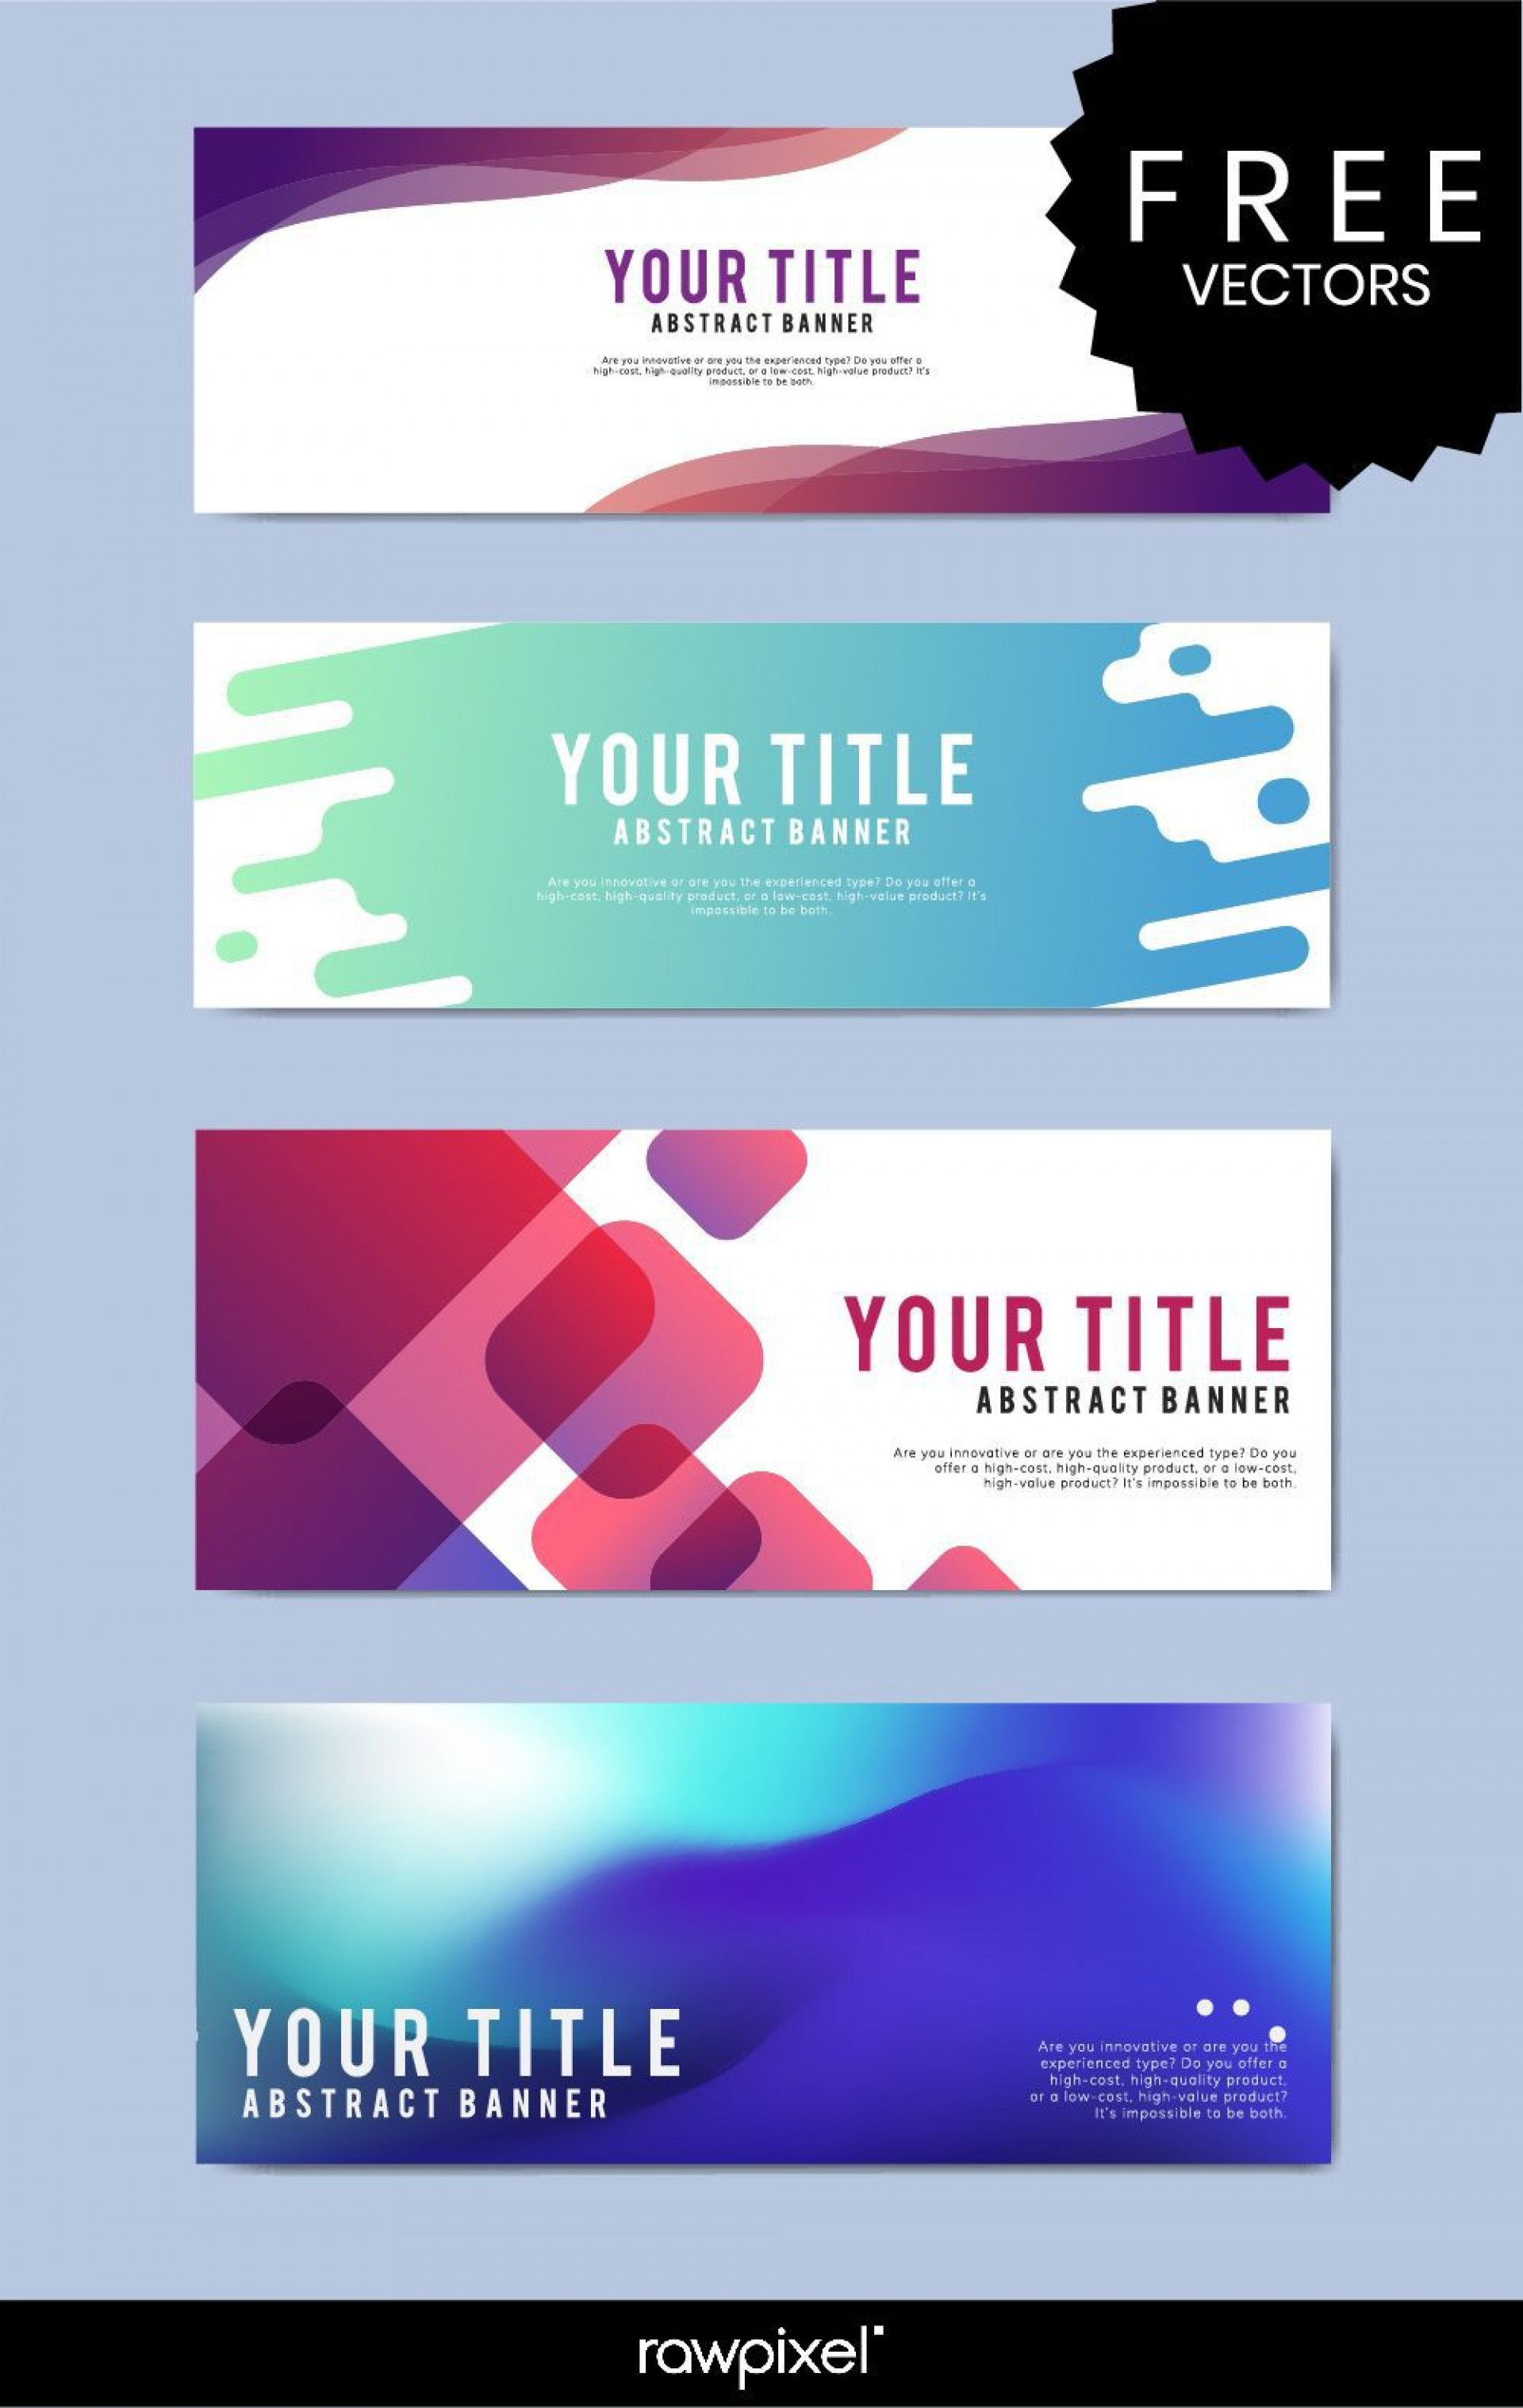 005 Staggering Free Graphic Design Template Idea  Templates For Flyer Powerpoint Download T-shirt1920